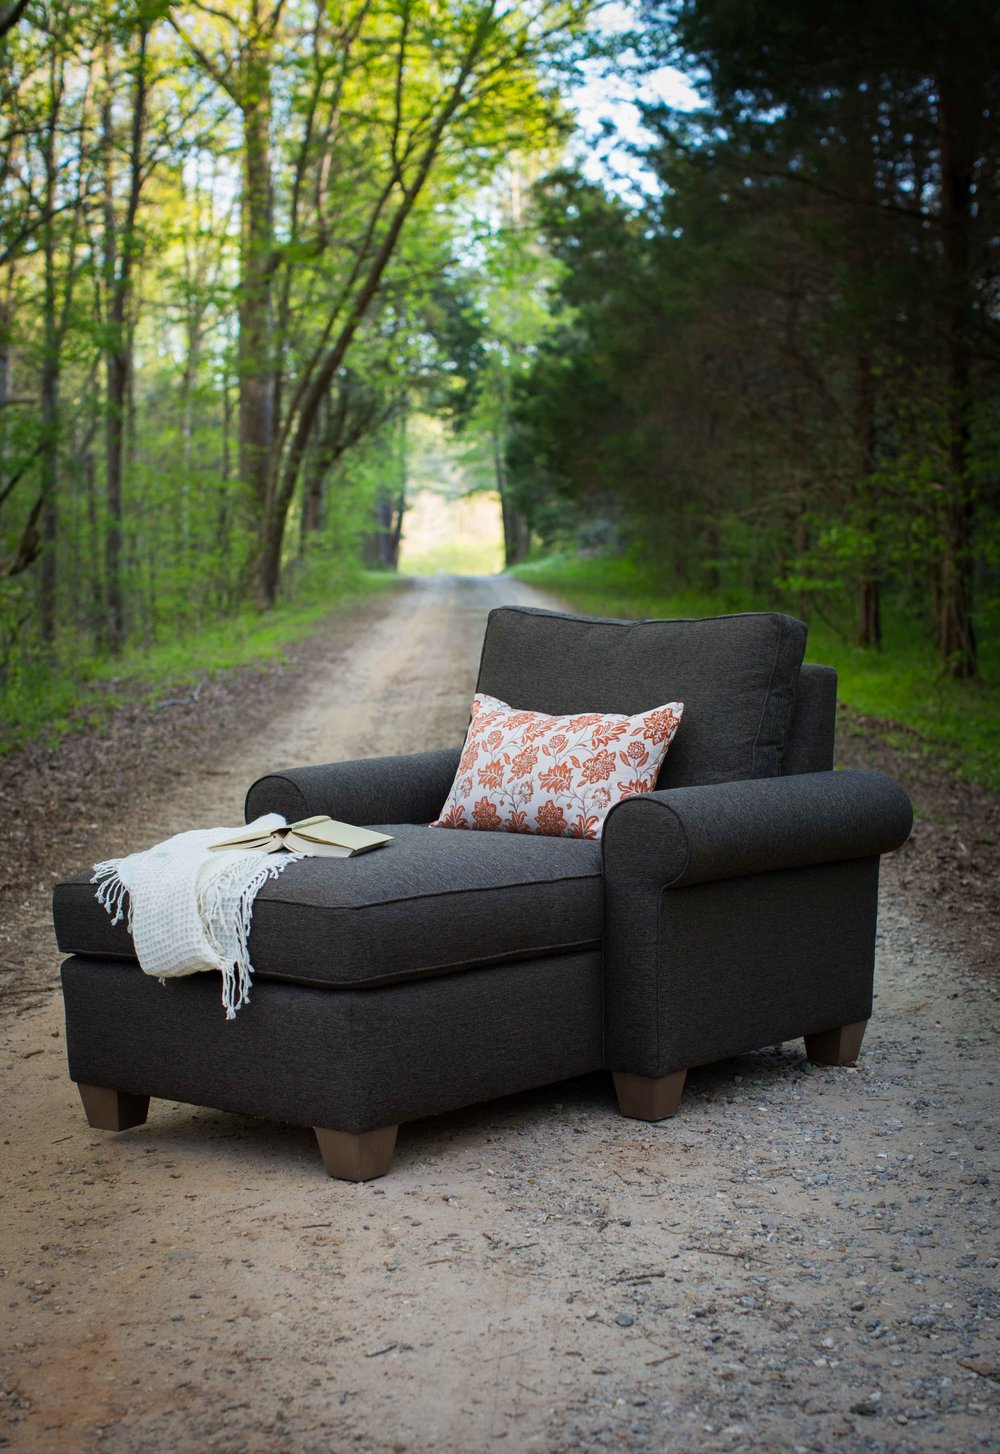 Furniture in nature 1.JPG